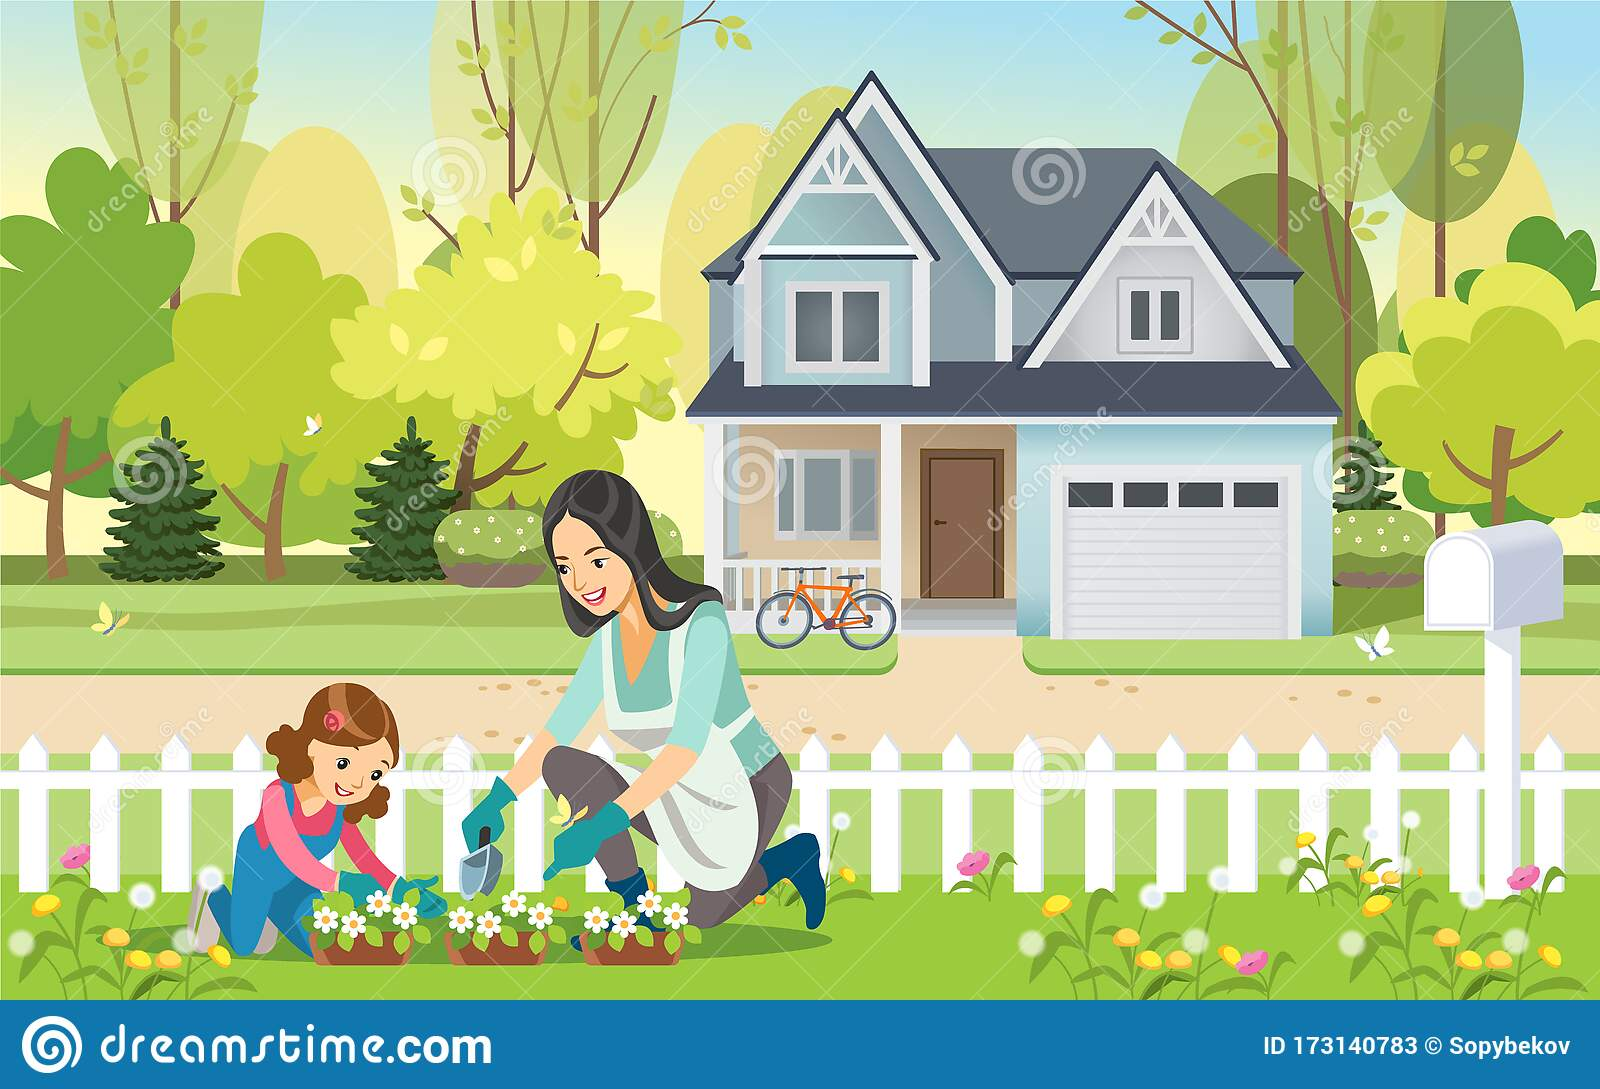 Happy Children Watering Plants In Garden Illustration. Royalty Free Cliparts,  Vectors, And Stock Illustration. Image 91332153.